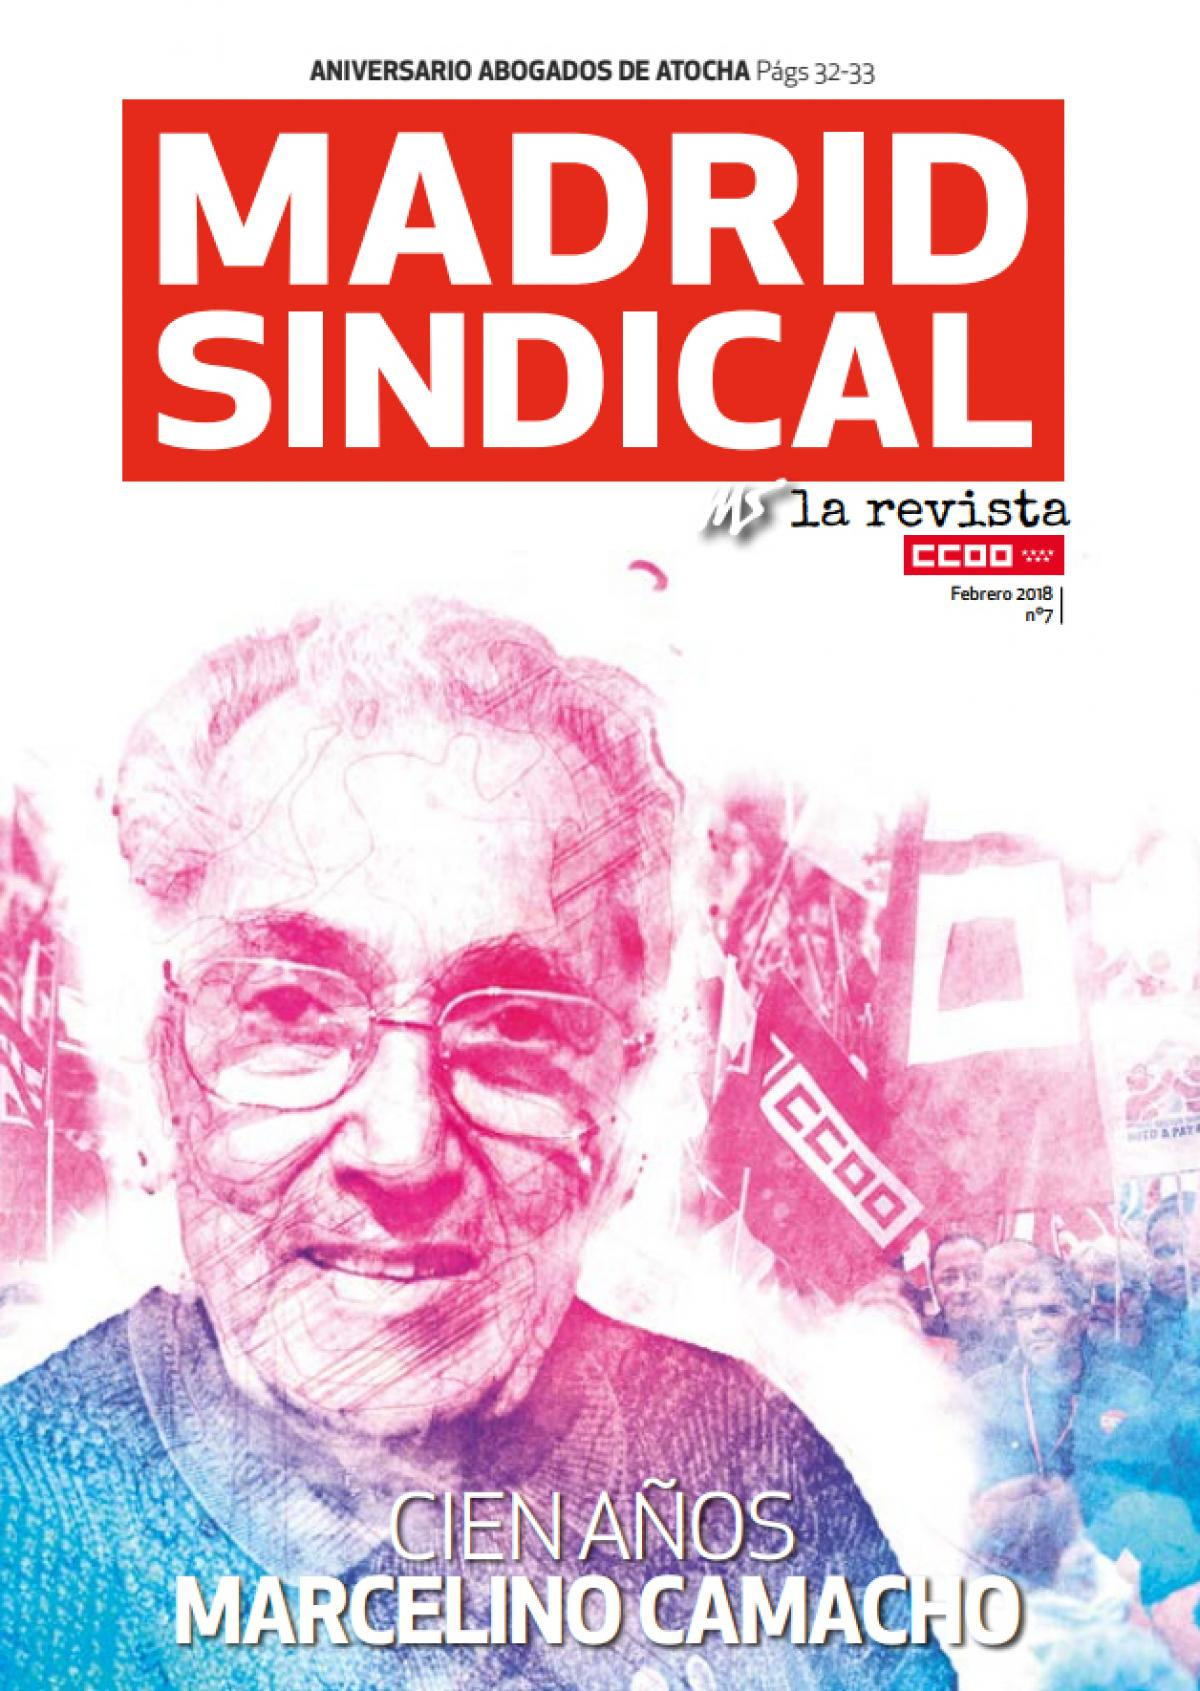 Madrid Sindical La Revista nº7